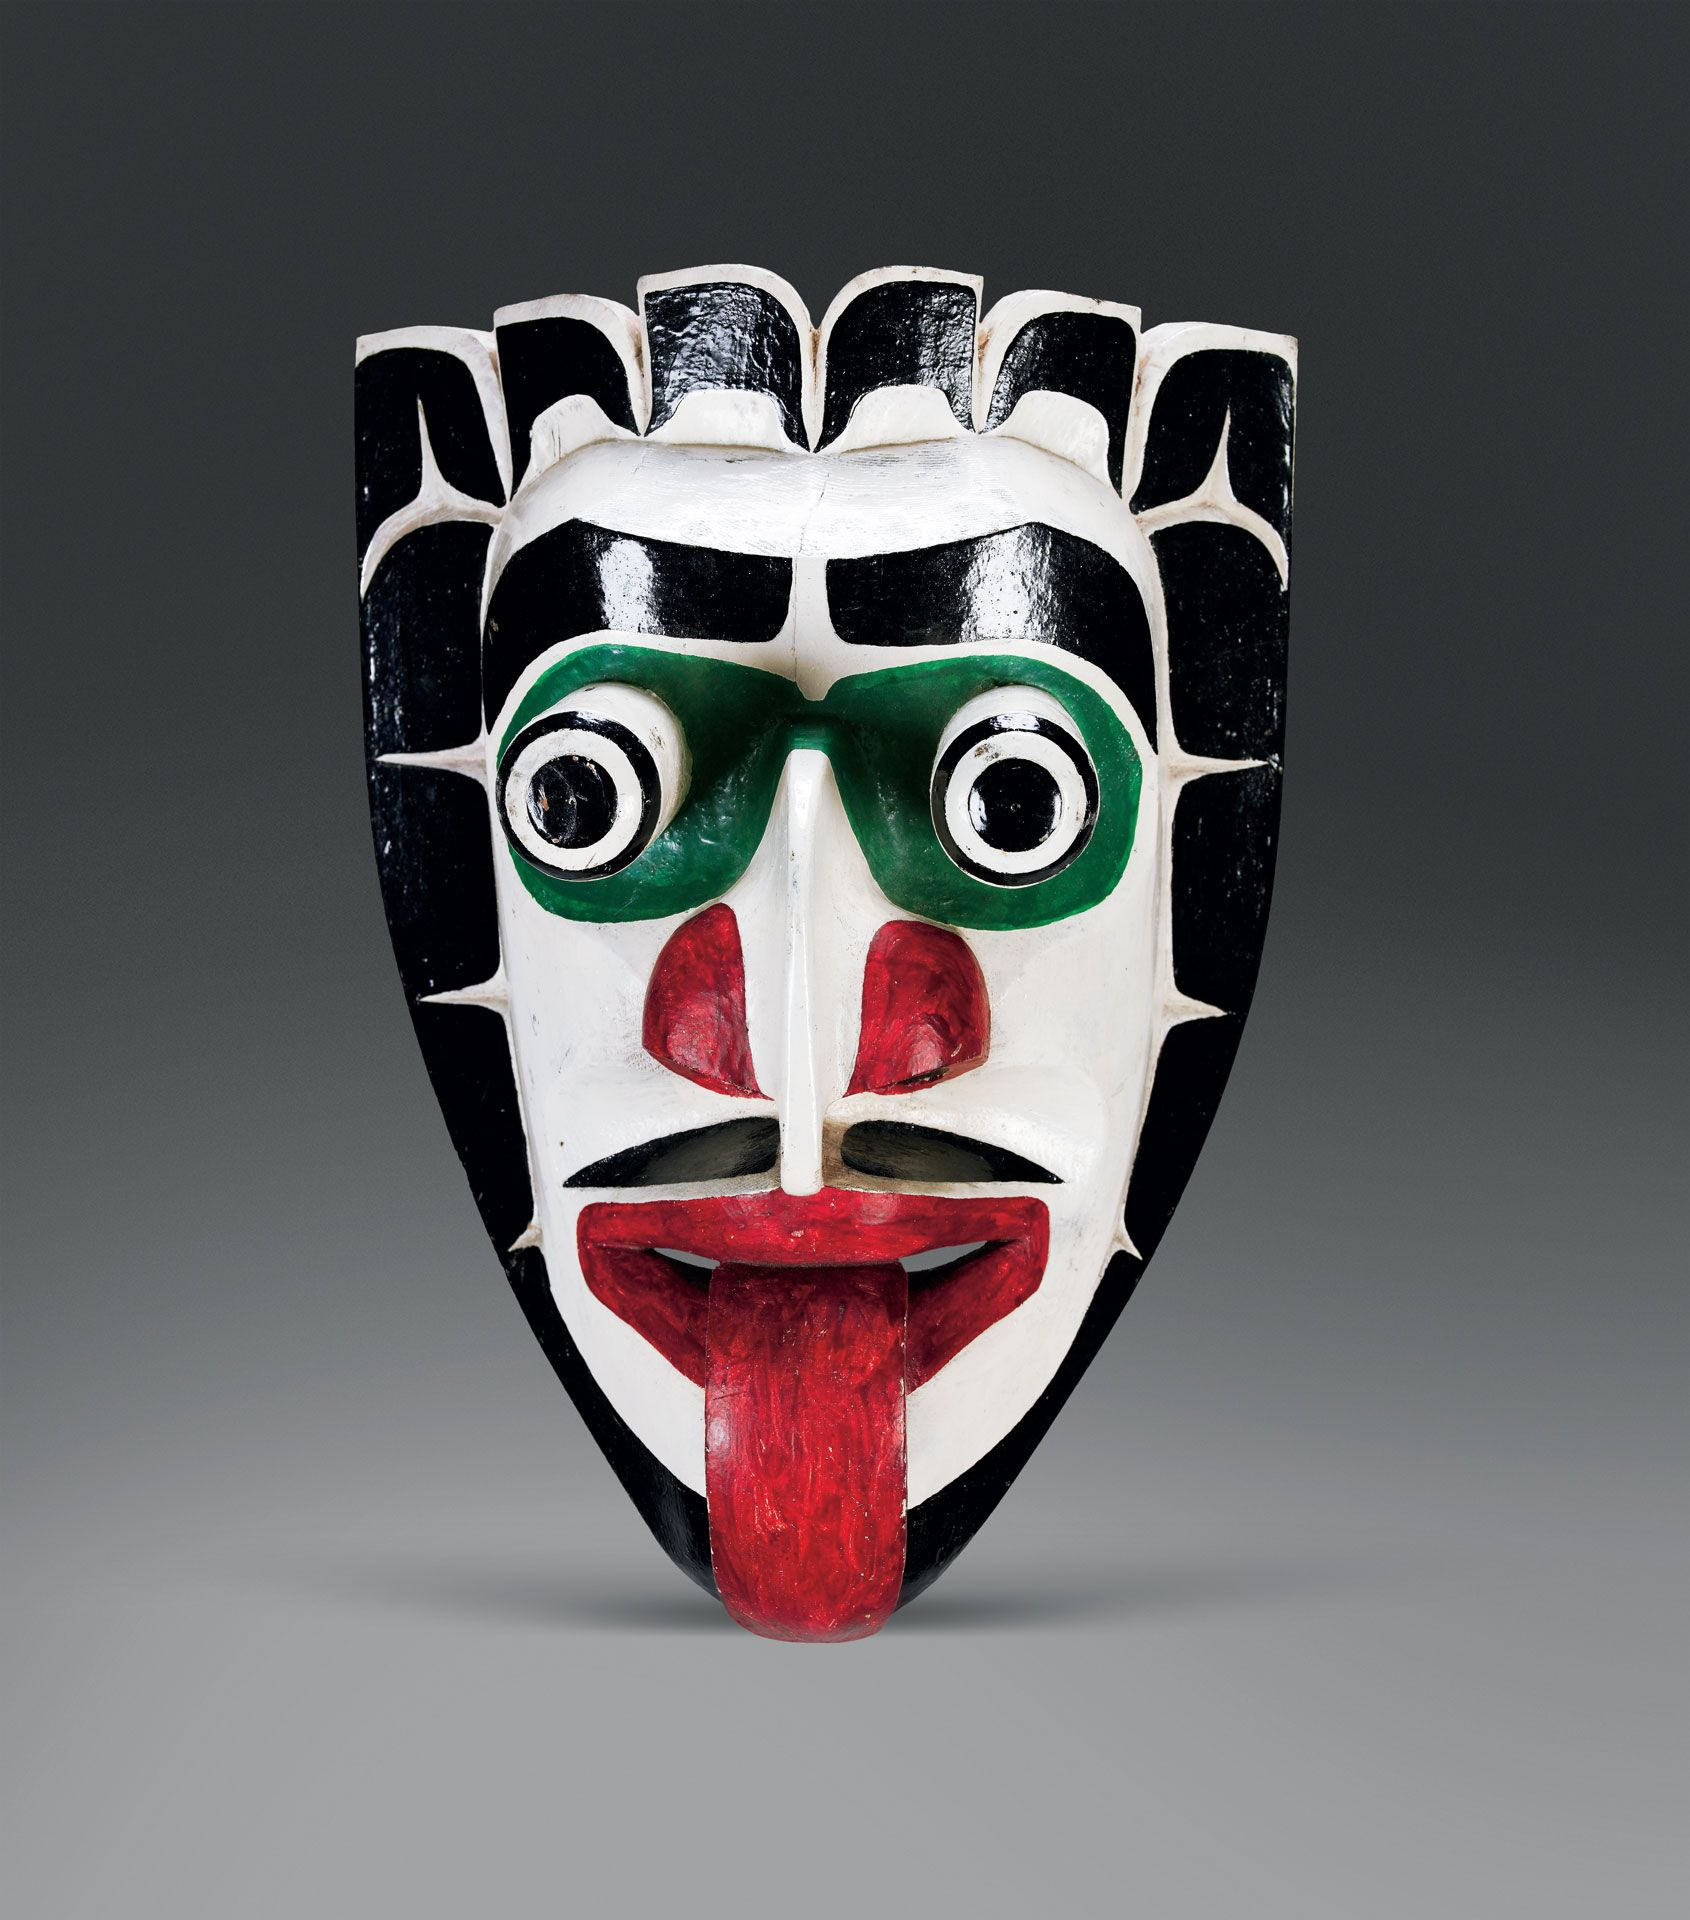 Willie Seaweed (Kwakwaka'wakw, Mamalilikala) (1873-1967), Xwexwe mask, before 1952, wood, paint, cotton fibre, 32.5 x 23.7 x 15 cm. Vancouver, Museum of Anthropology. Inv. A4165. Photo Courtesy of UBC Museum of Anthropology. Photo Kyla Bailey